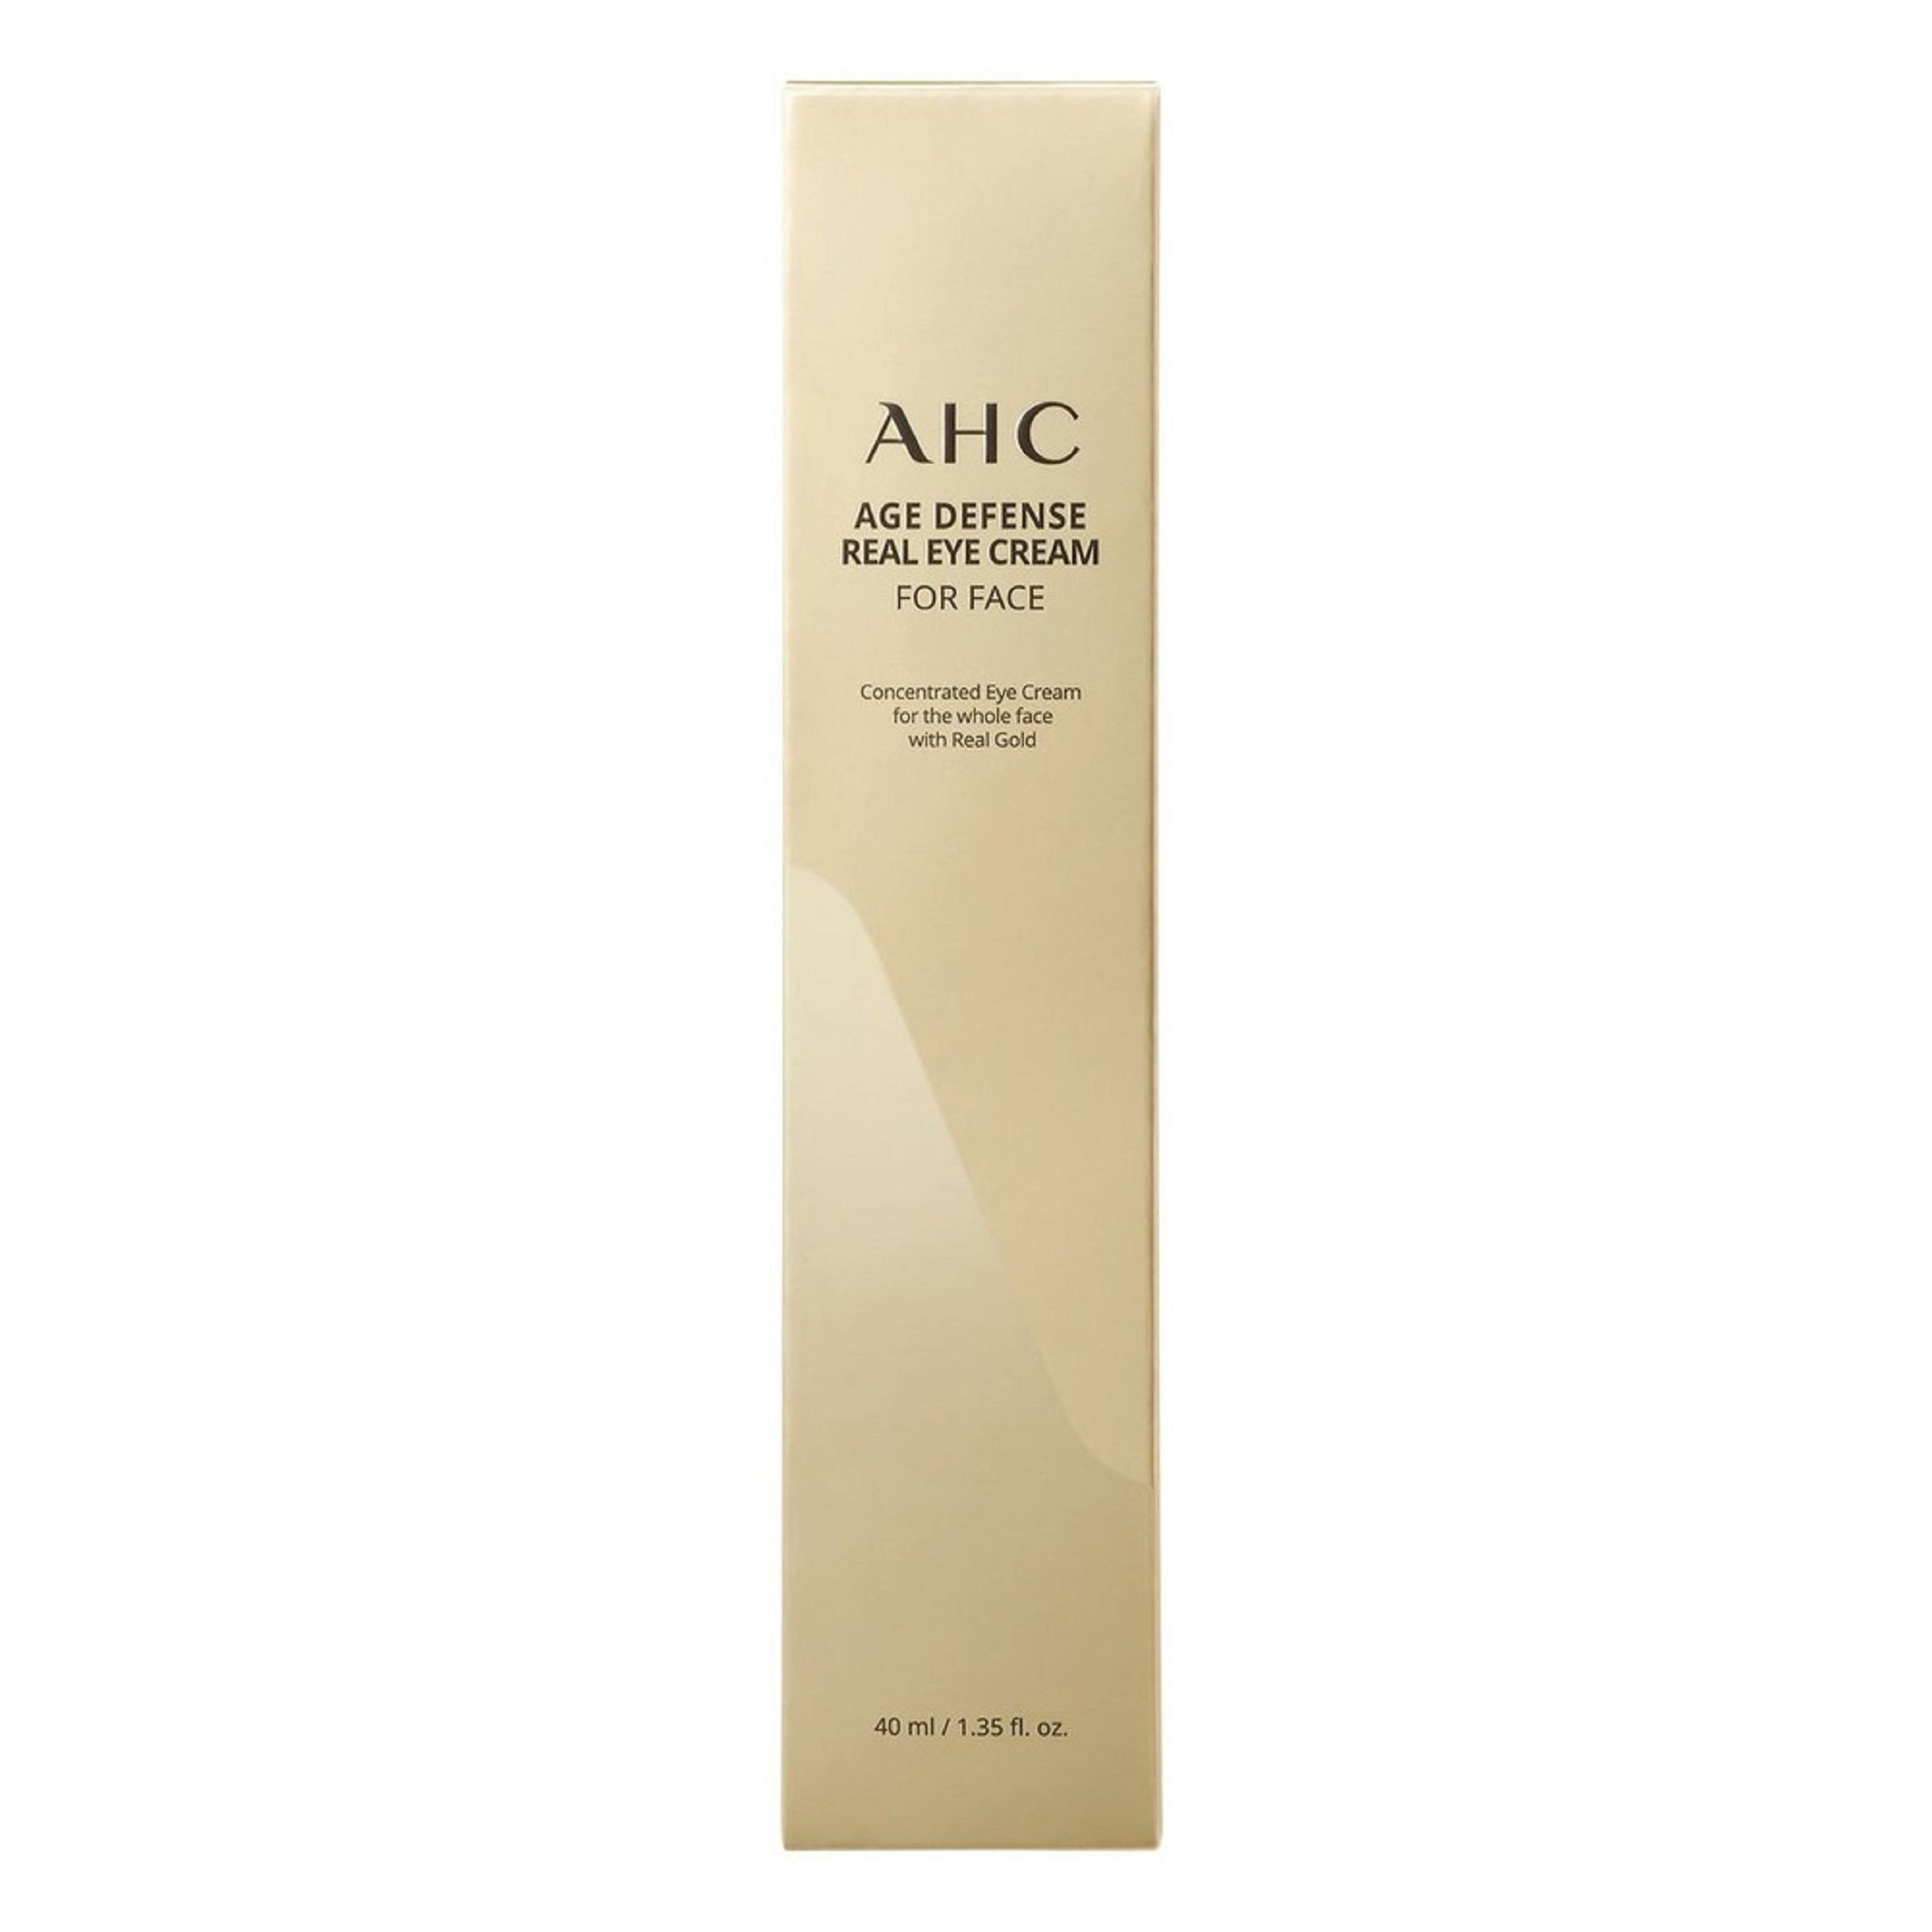 Age Defense Real Eye Cream for Face 40ml